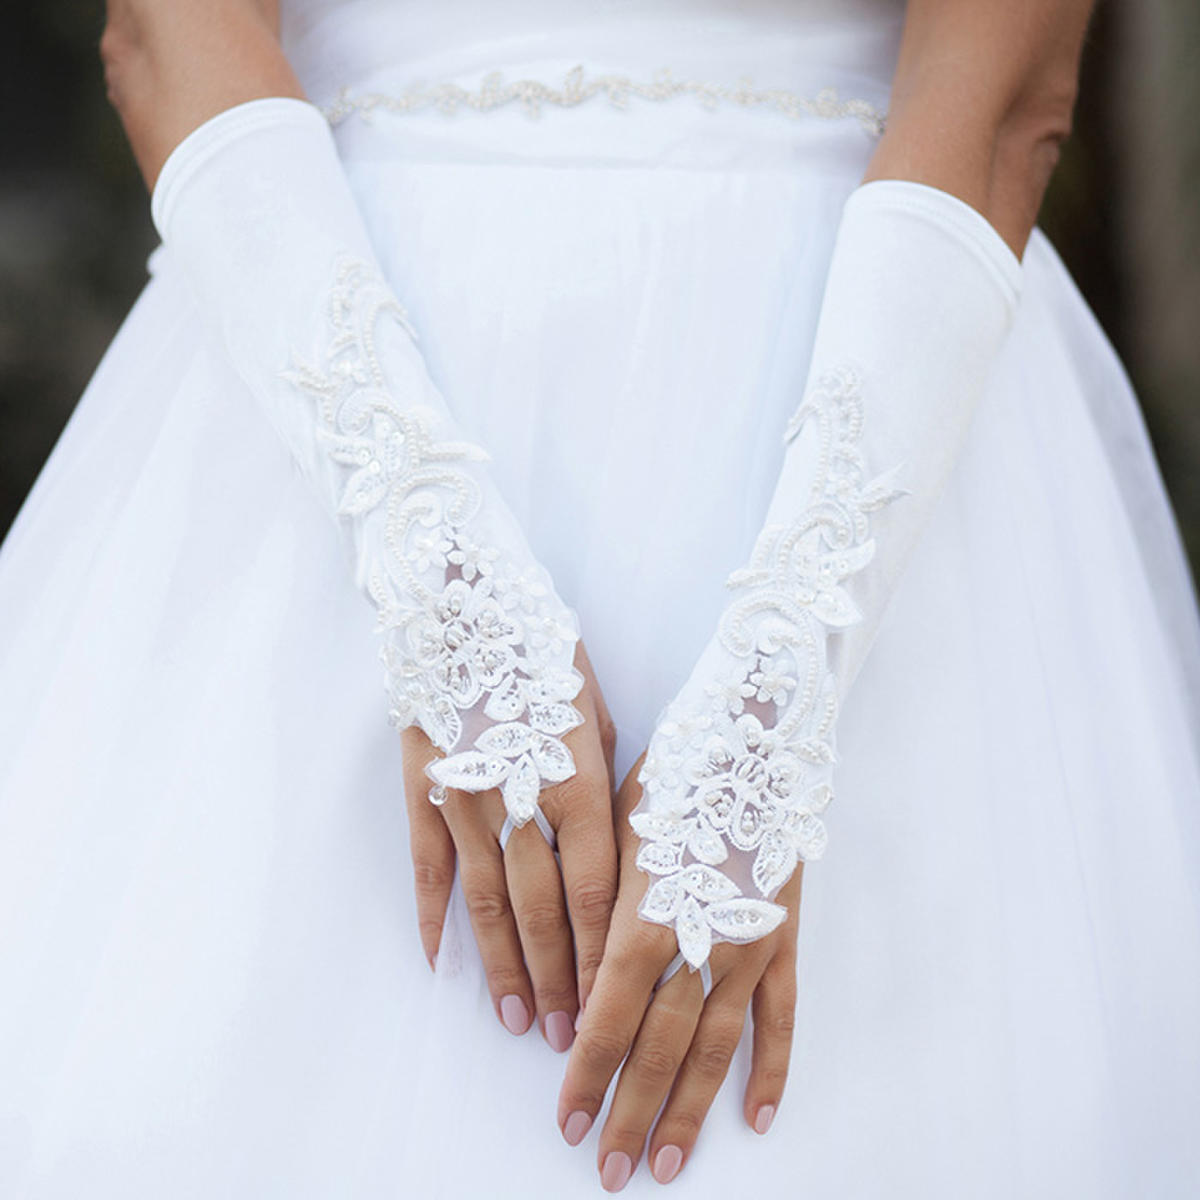 WONA TRADING INC - Lace Flower Satin Fingerless Wedding Glove GL967